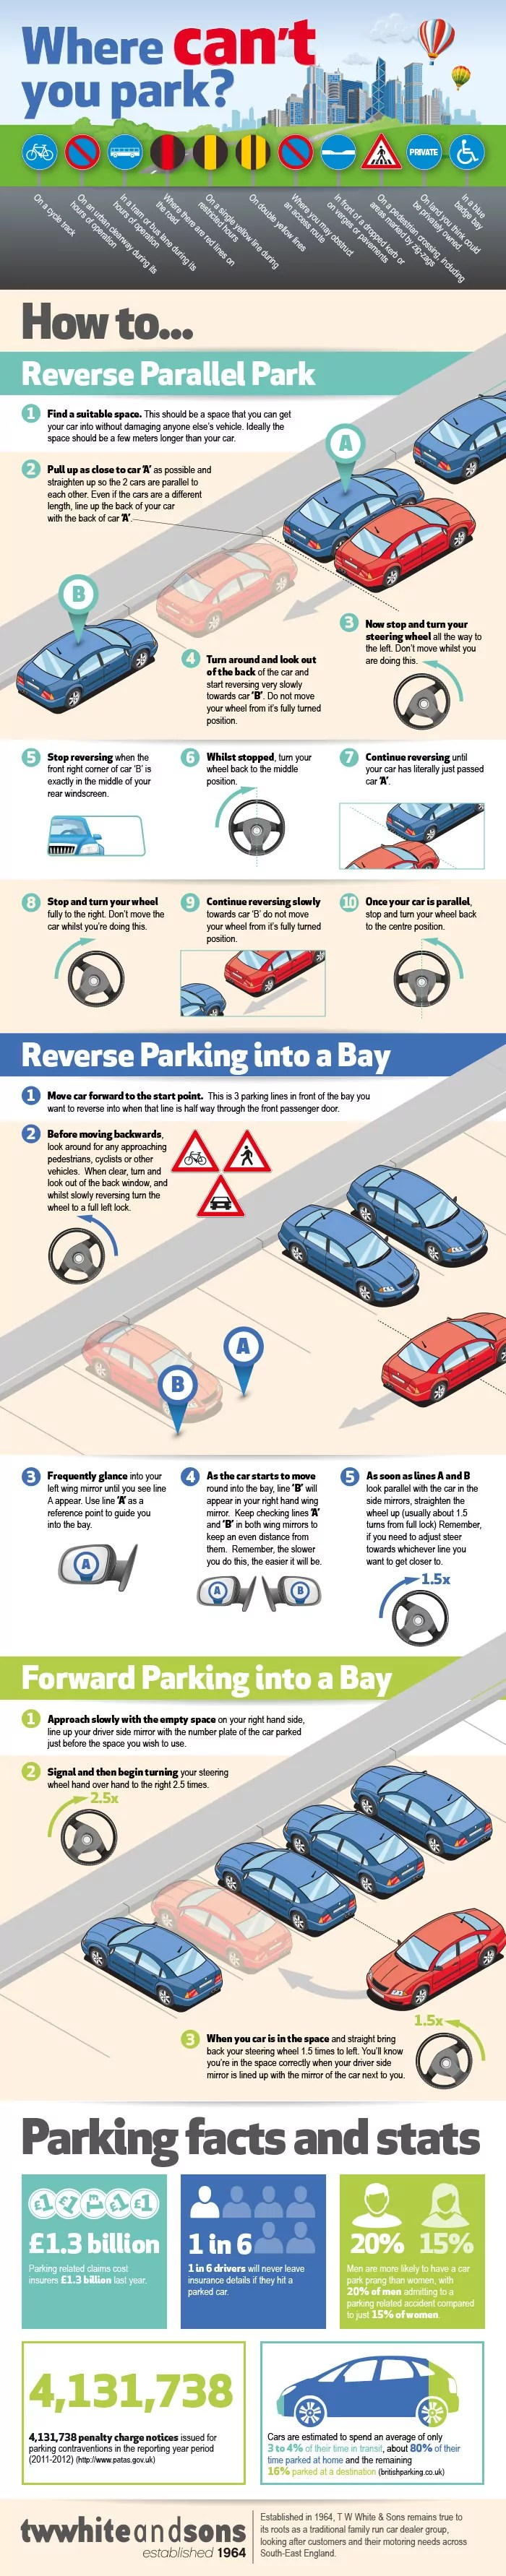 Parking Guide Infographic